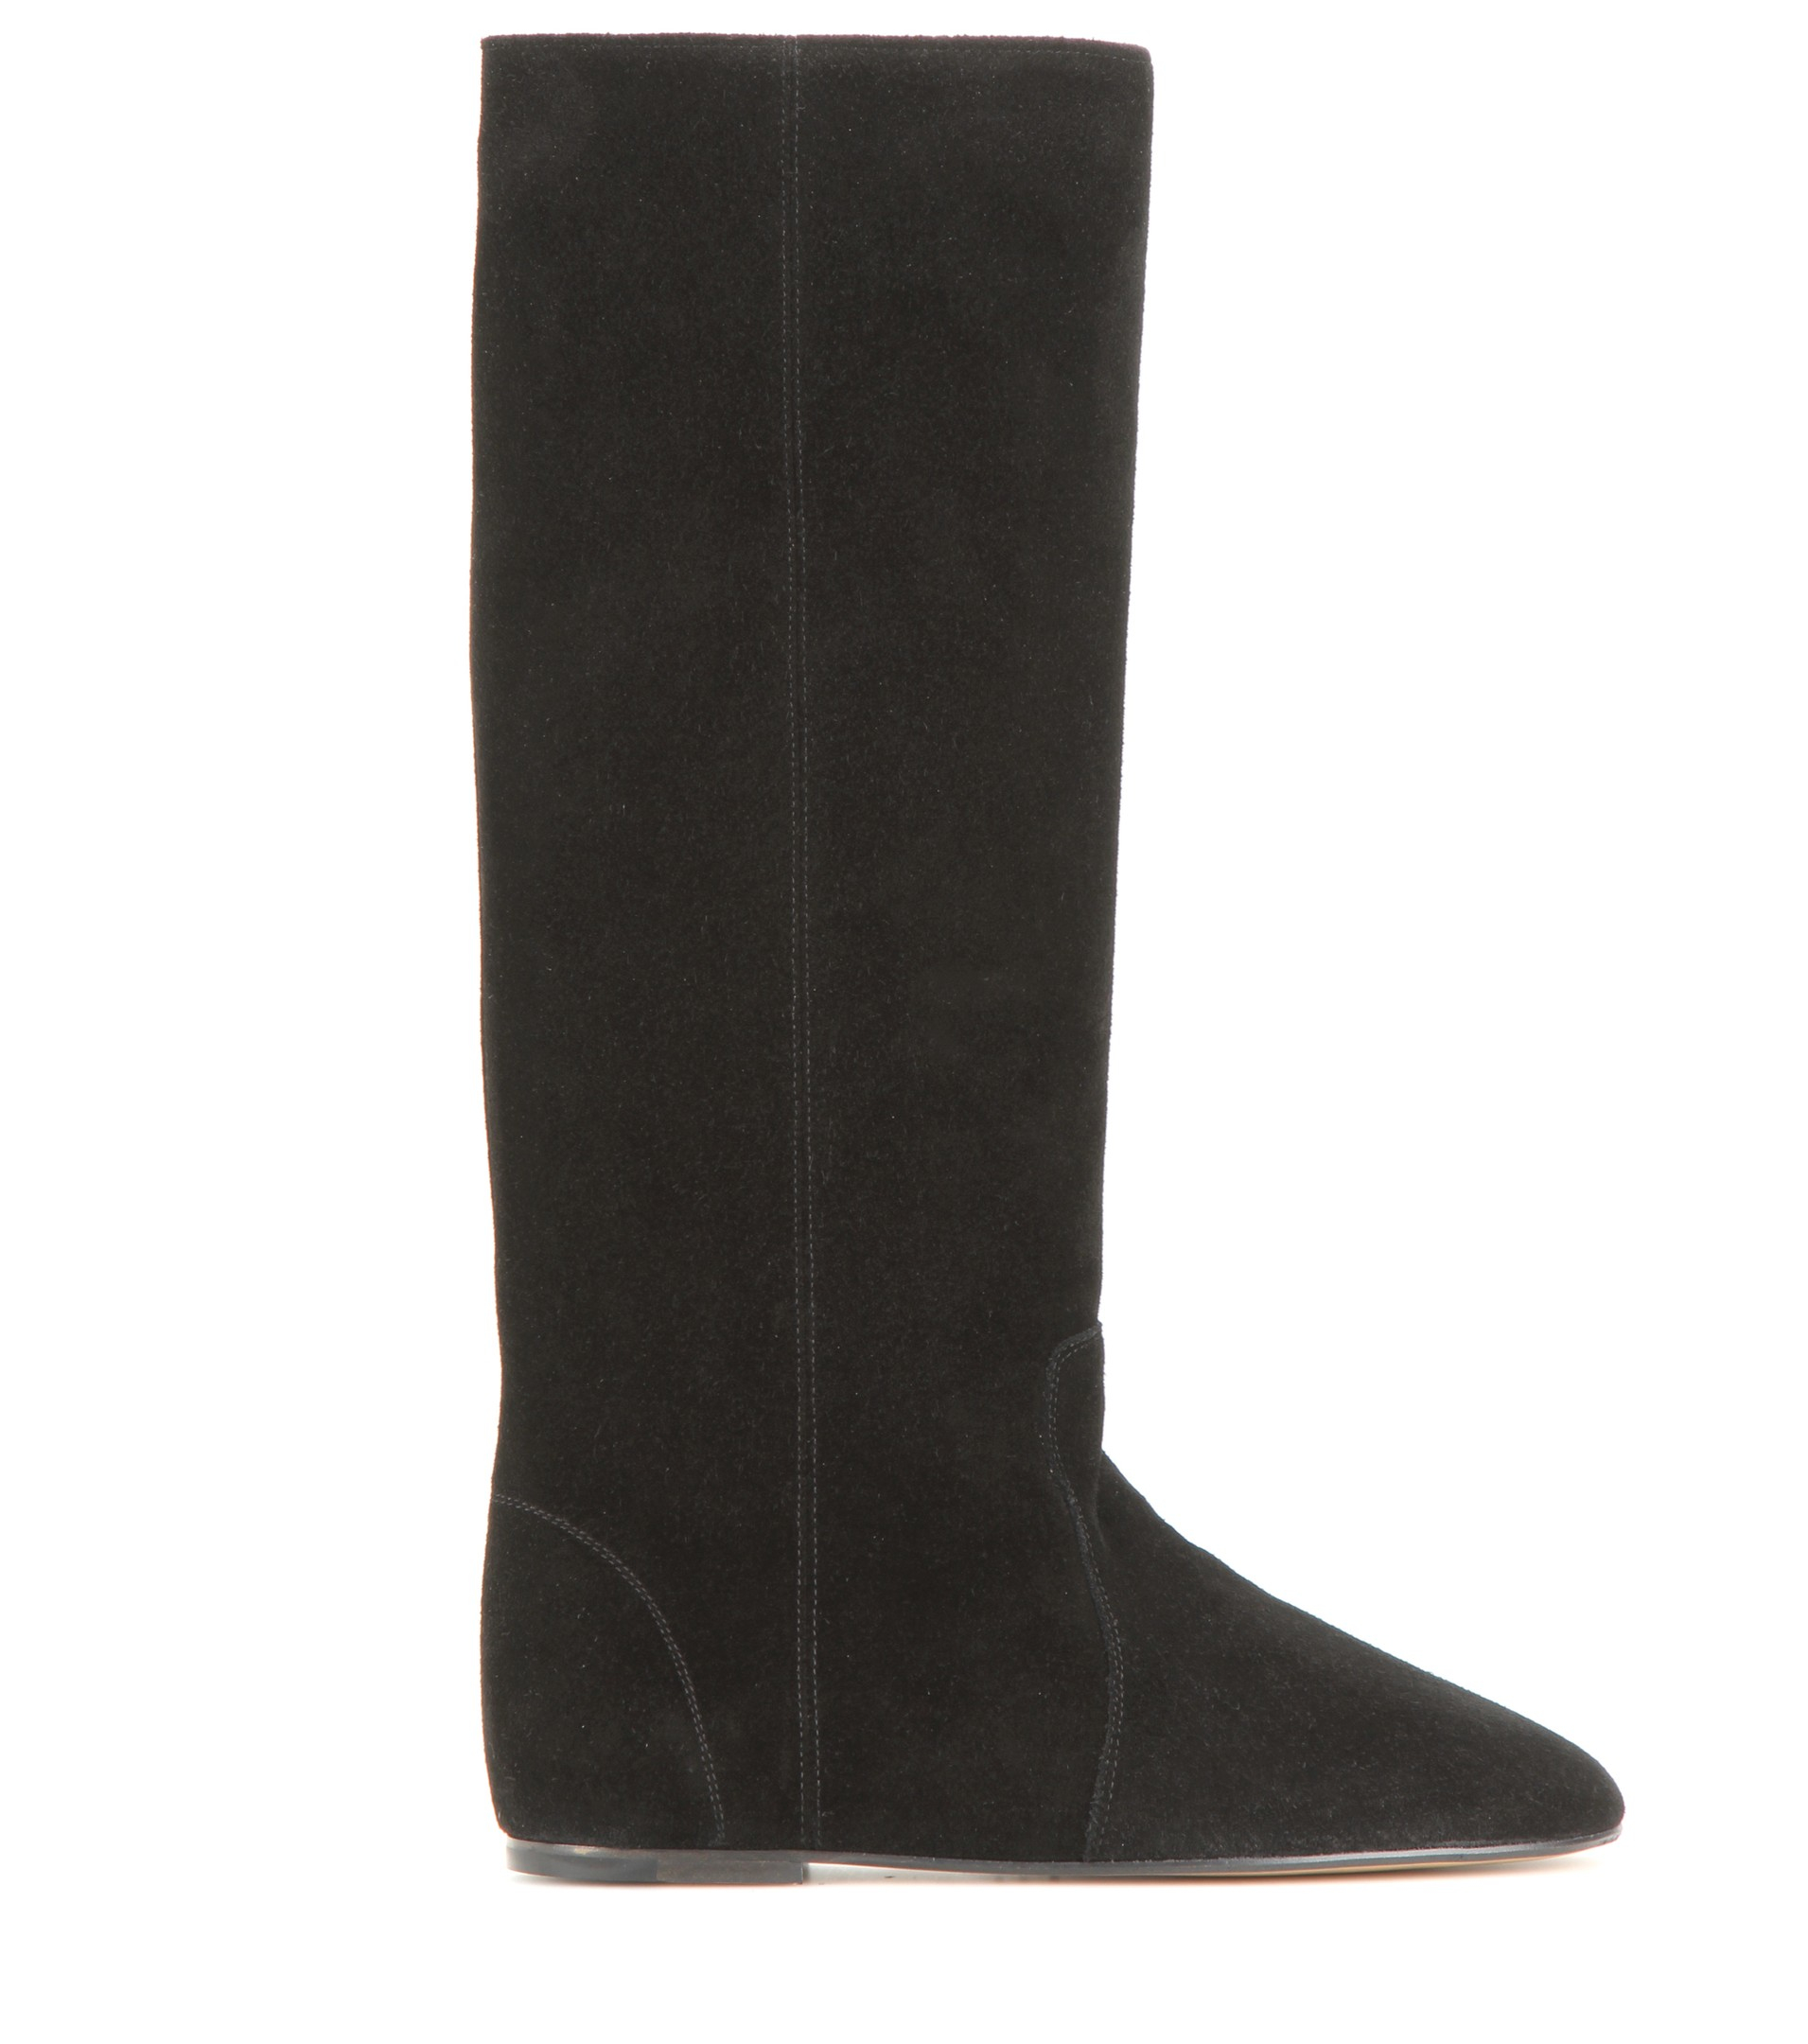 a2bd4061893 Isabel Marant Étoile Renee Suede Knee-high Boots in Black - Lyst